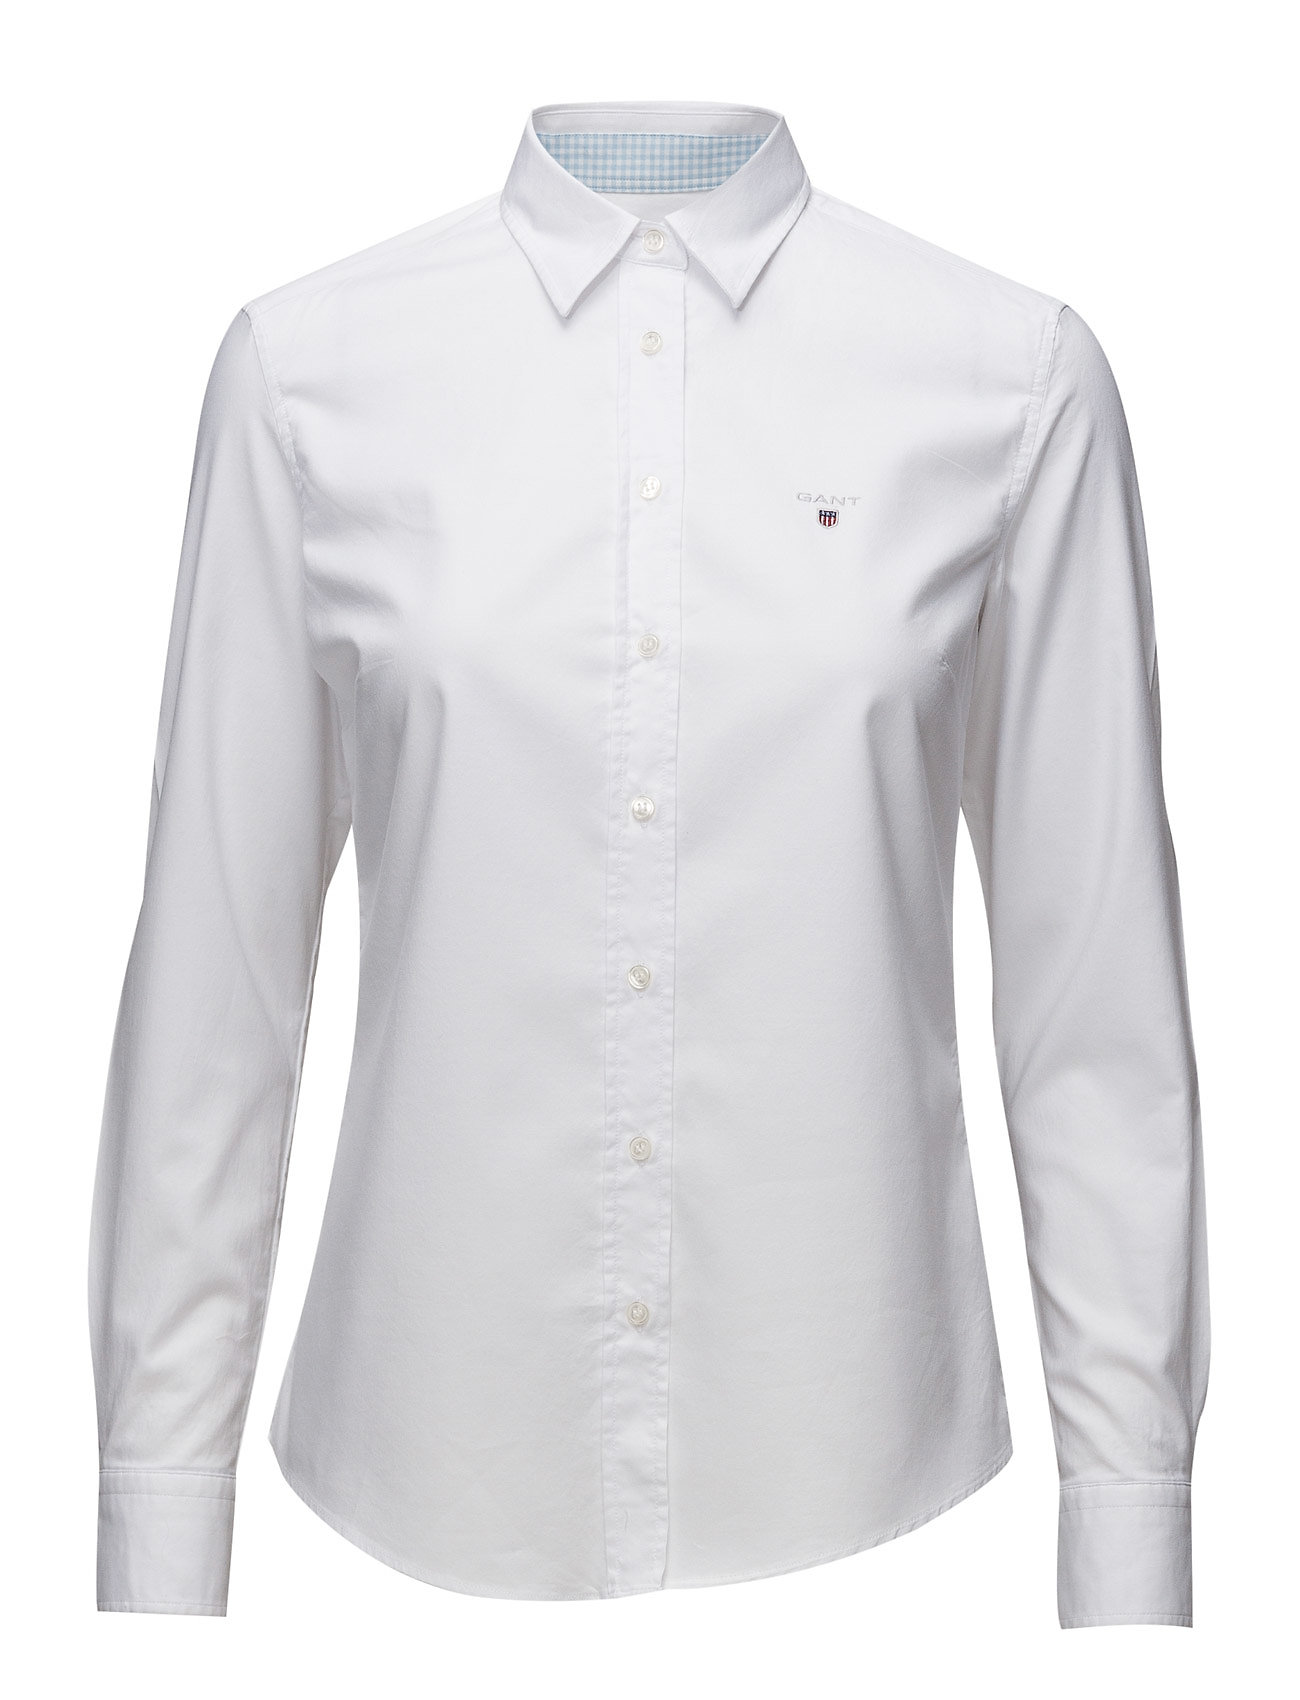 GANT STRETCH OXFORD SOLID - WHITE